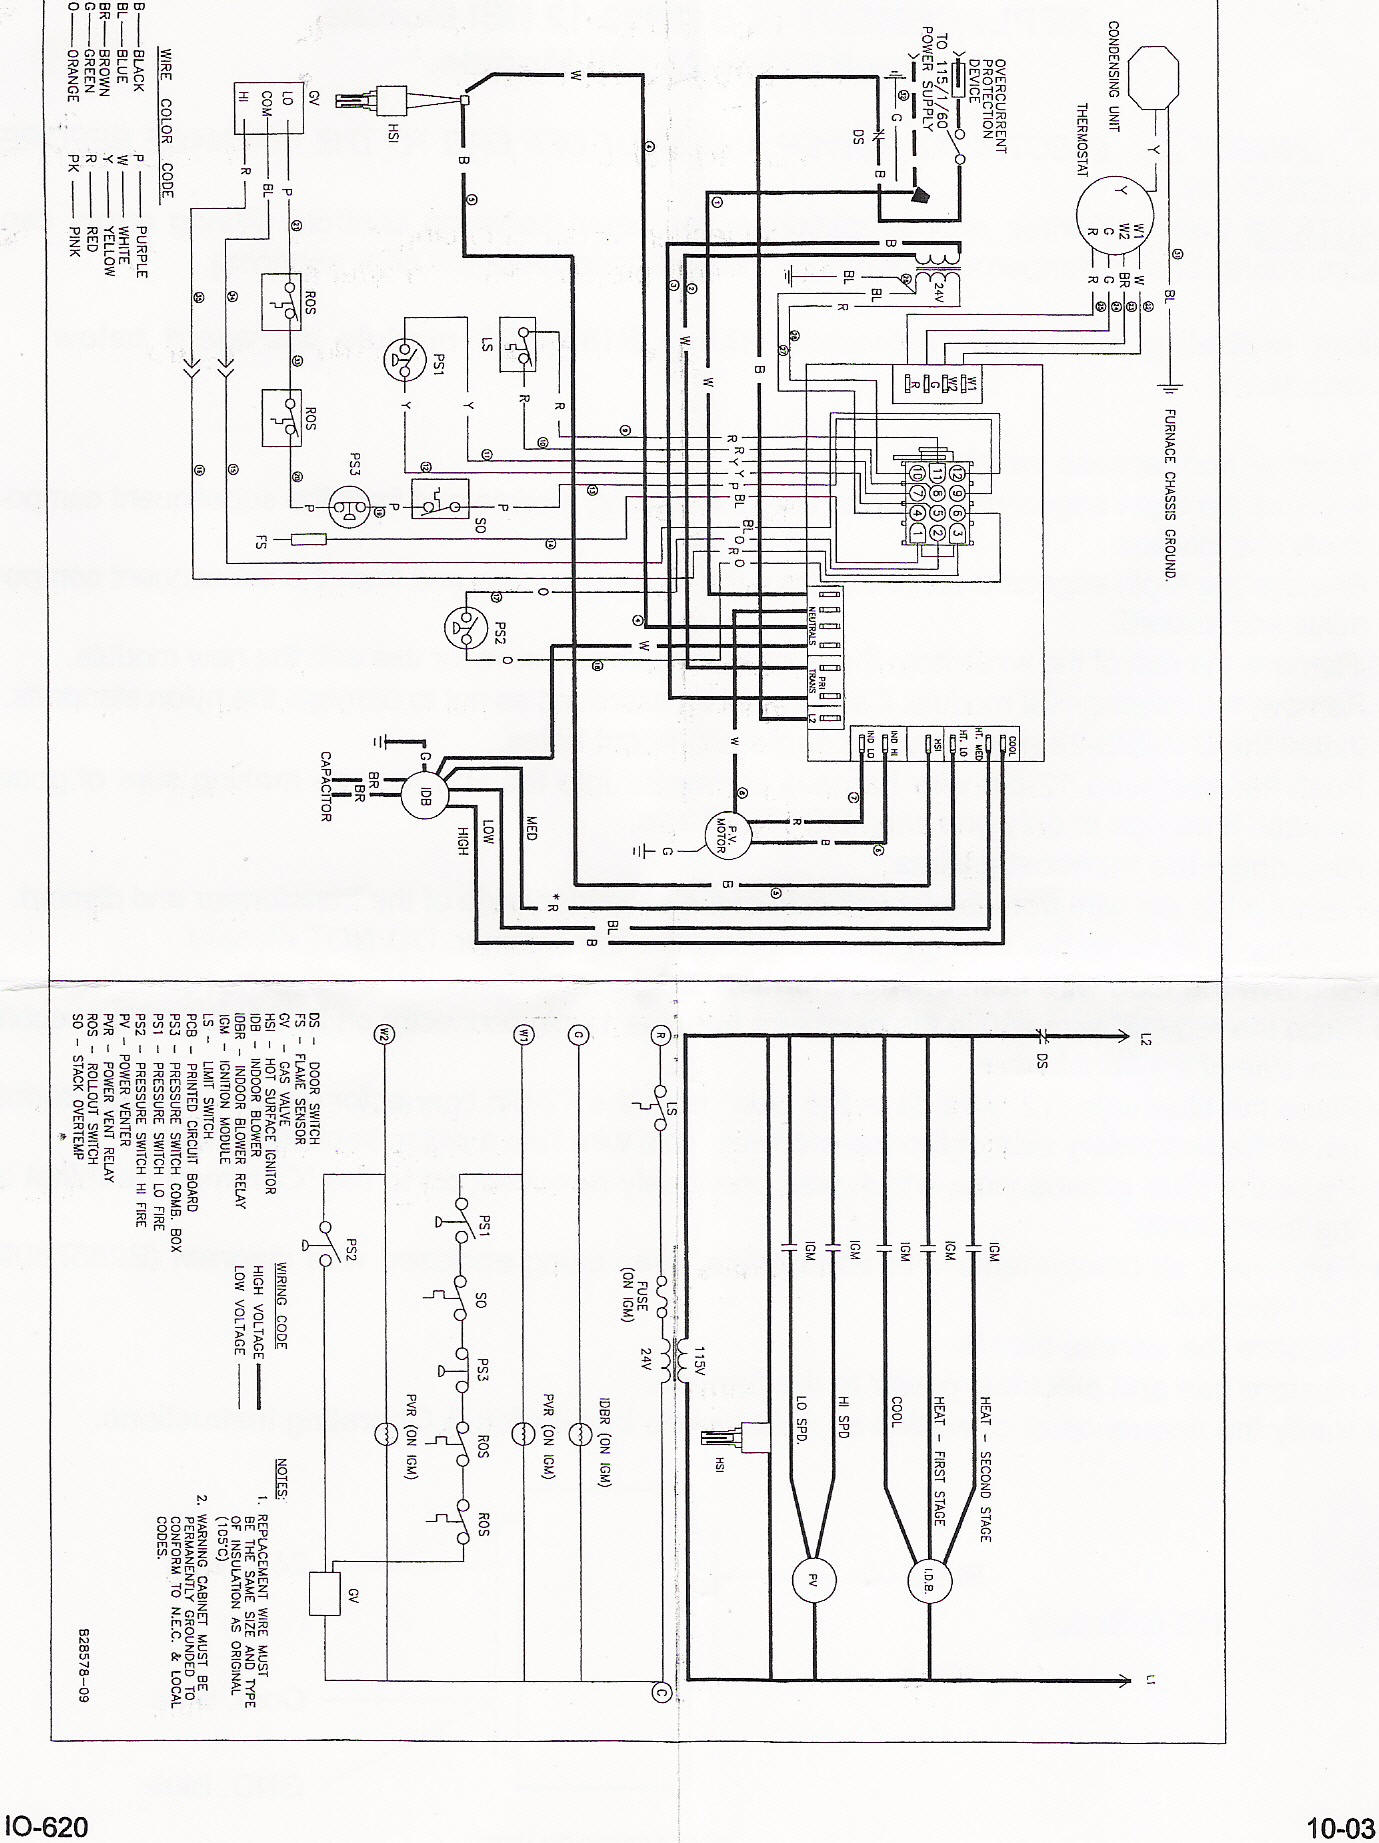 goodma2 instr goodman control board b18099 23 instructions Tempstar 12 Heat Pump Schematic at alyssarenee.co